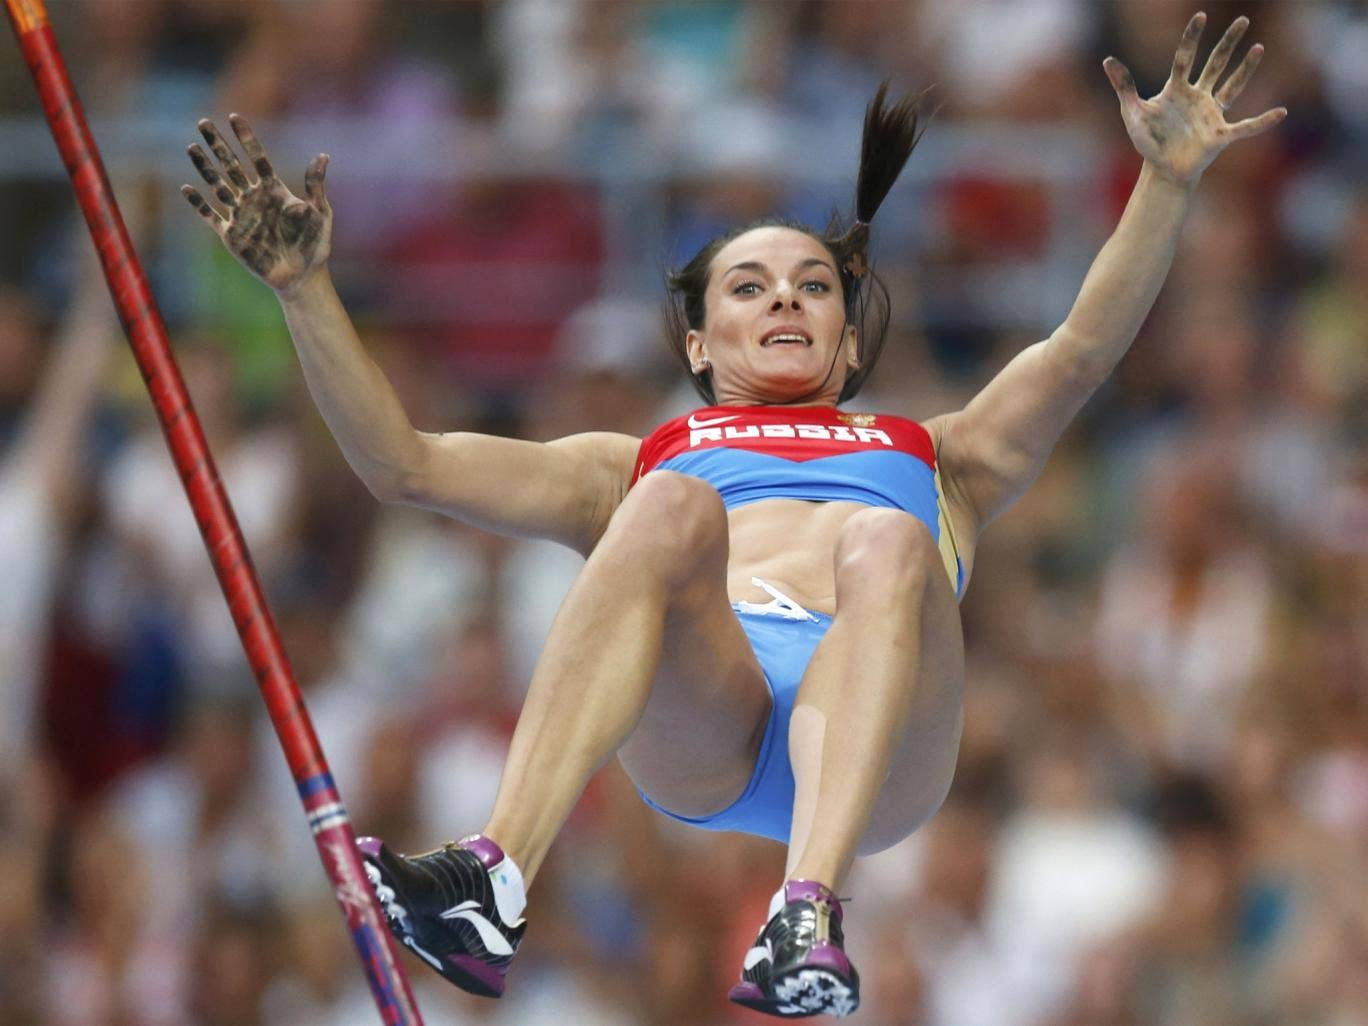 Yelena Isinbayeva claims victory in the pole vault final